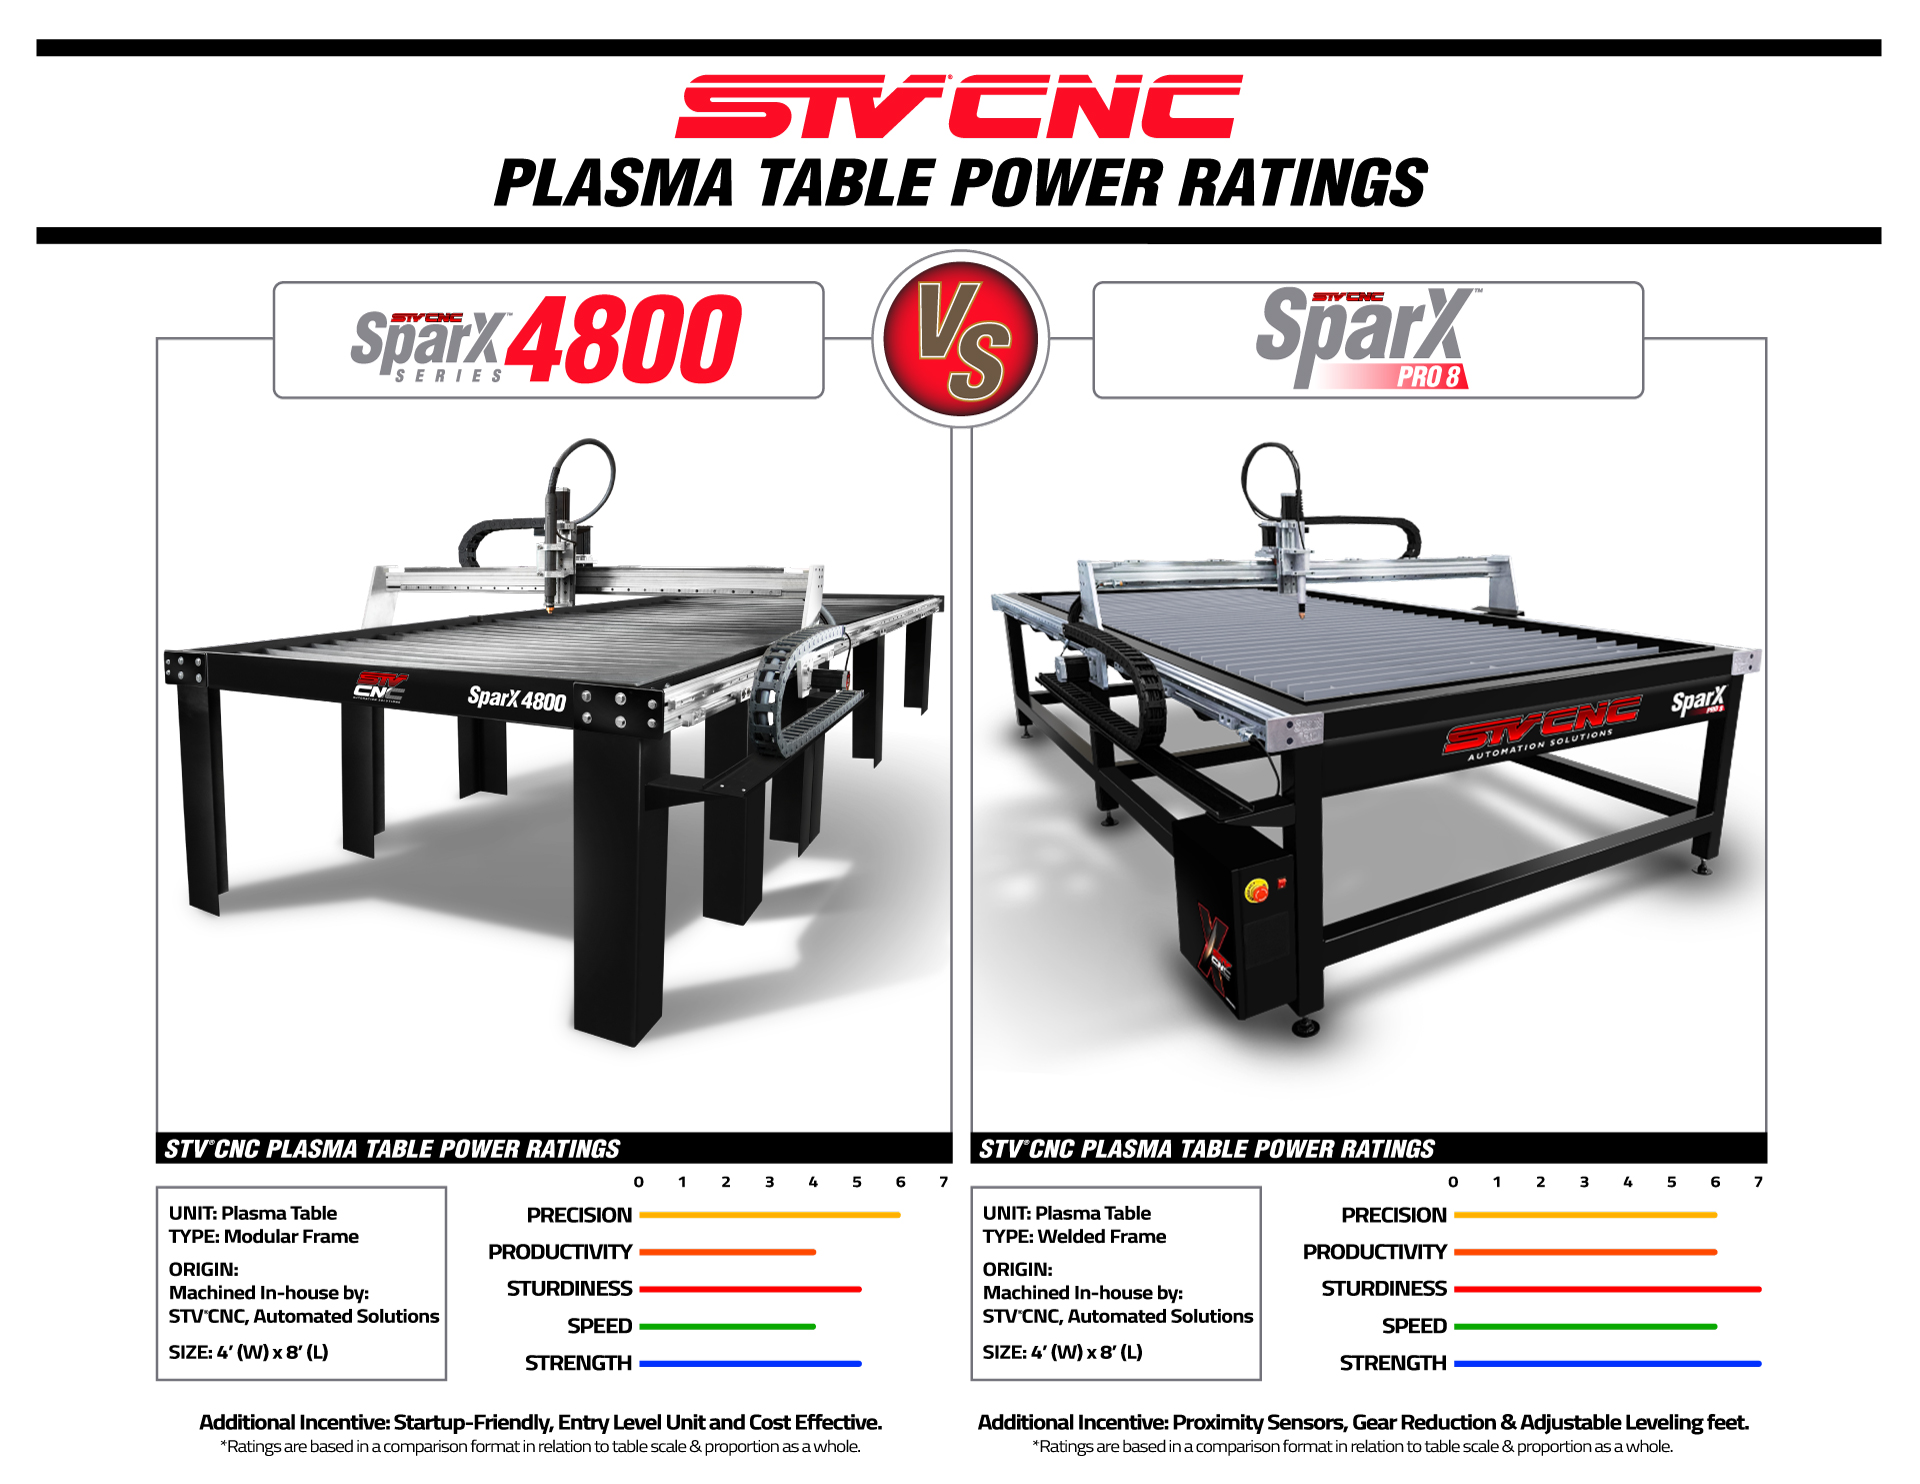 STVCNC Plasma Table Power Ratings 4x8